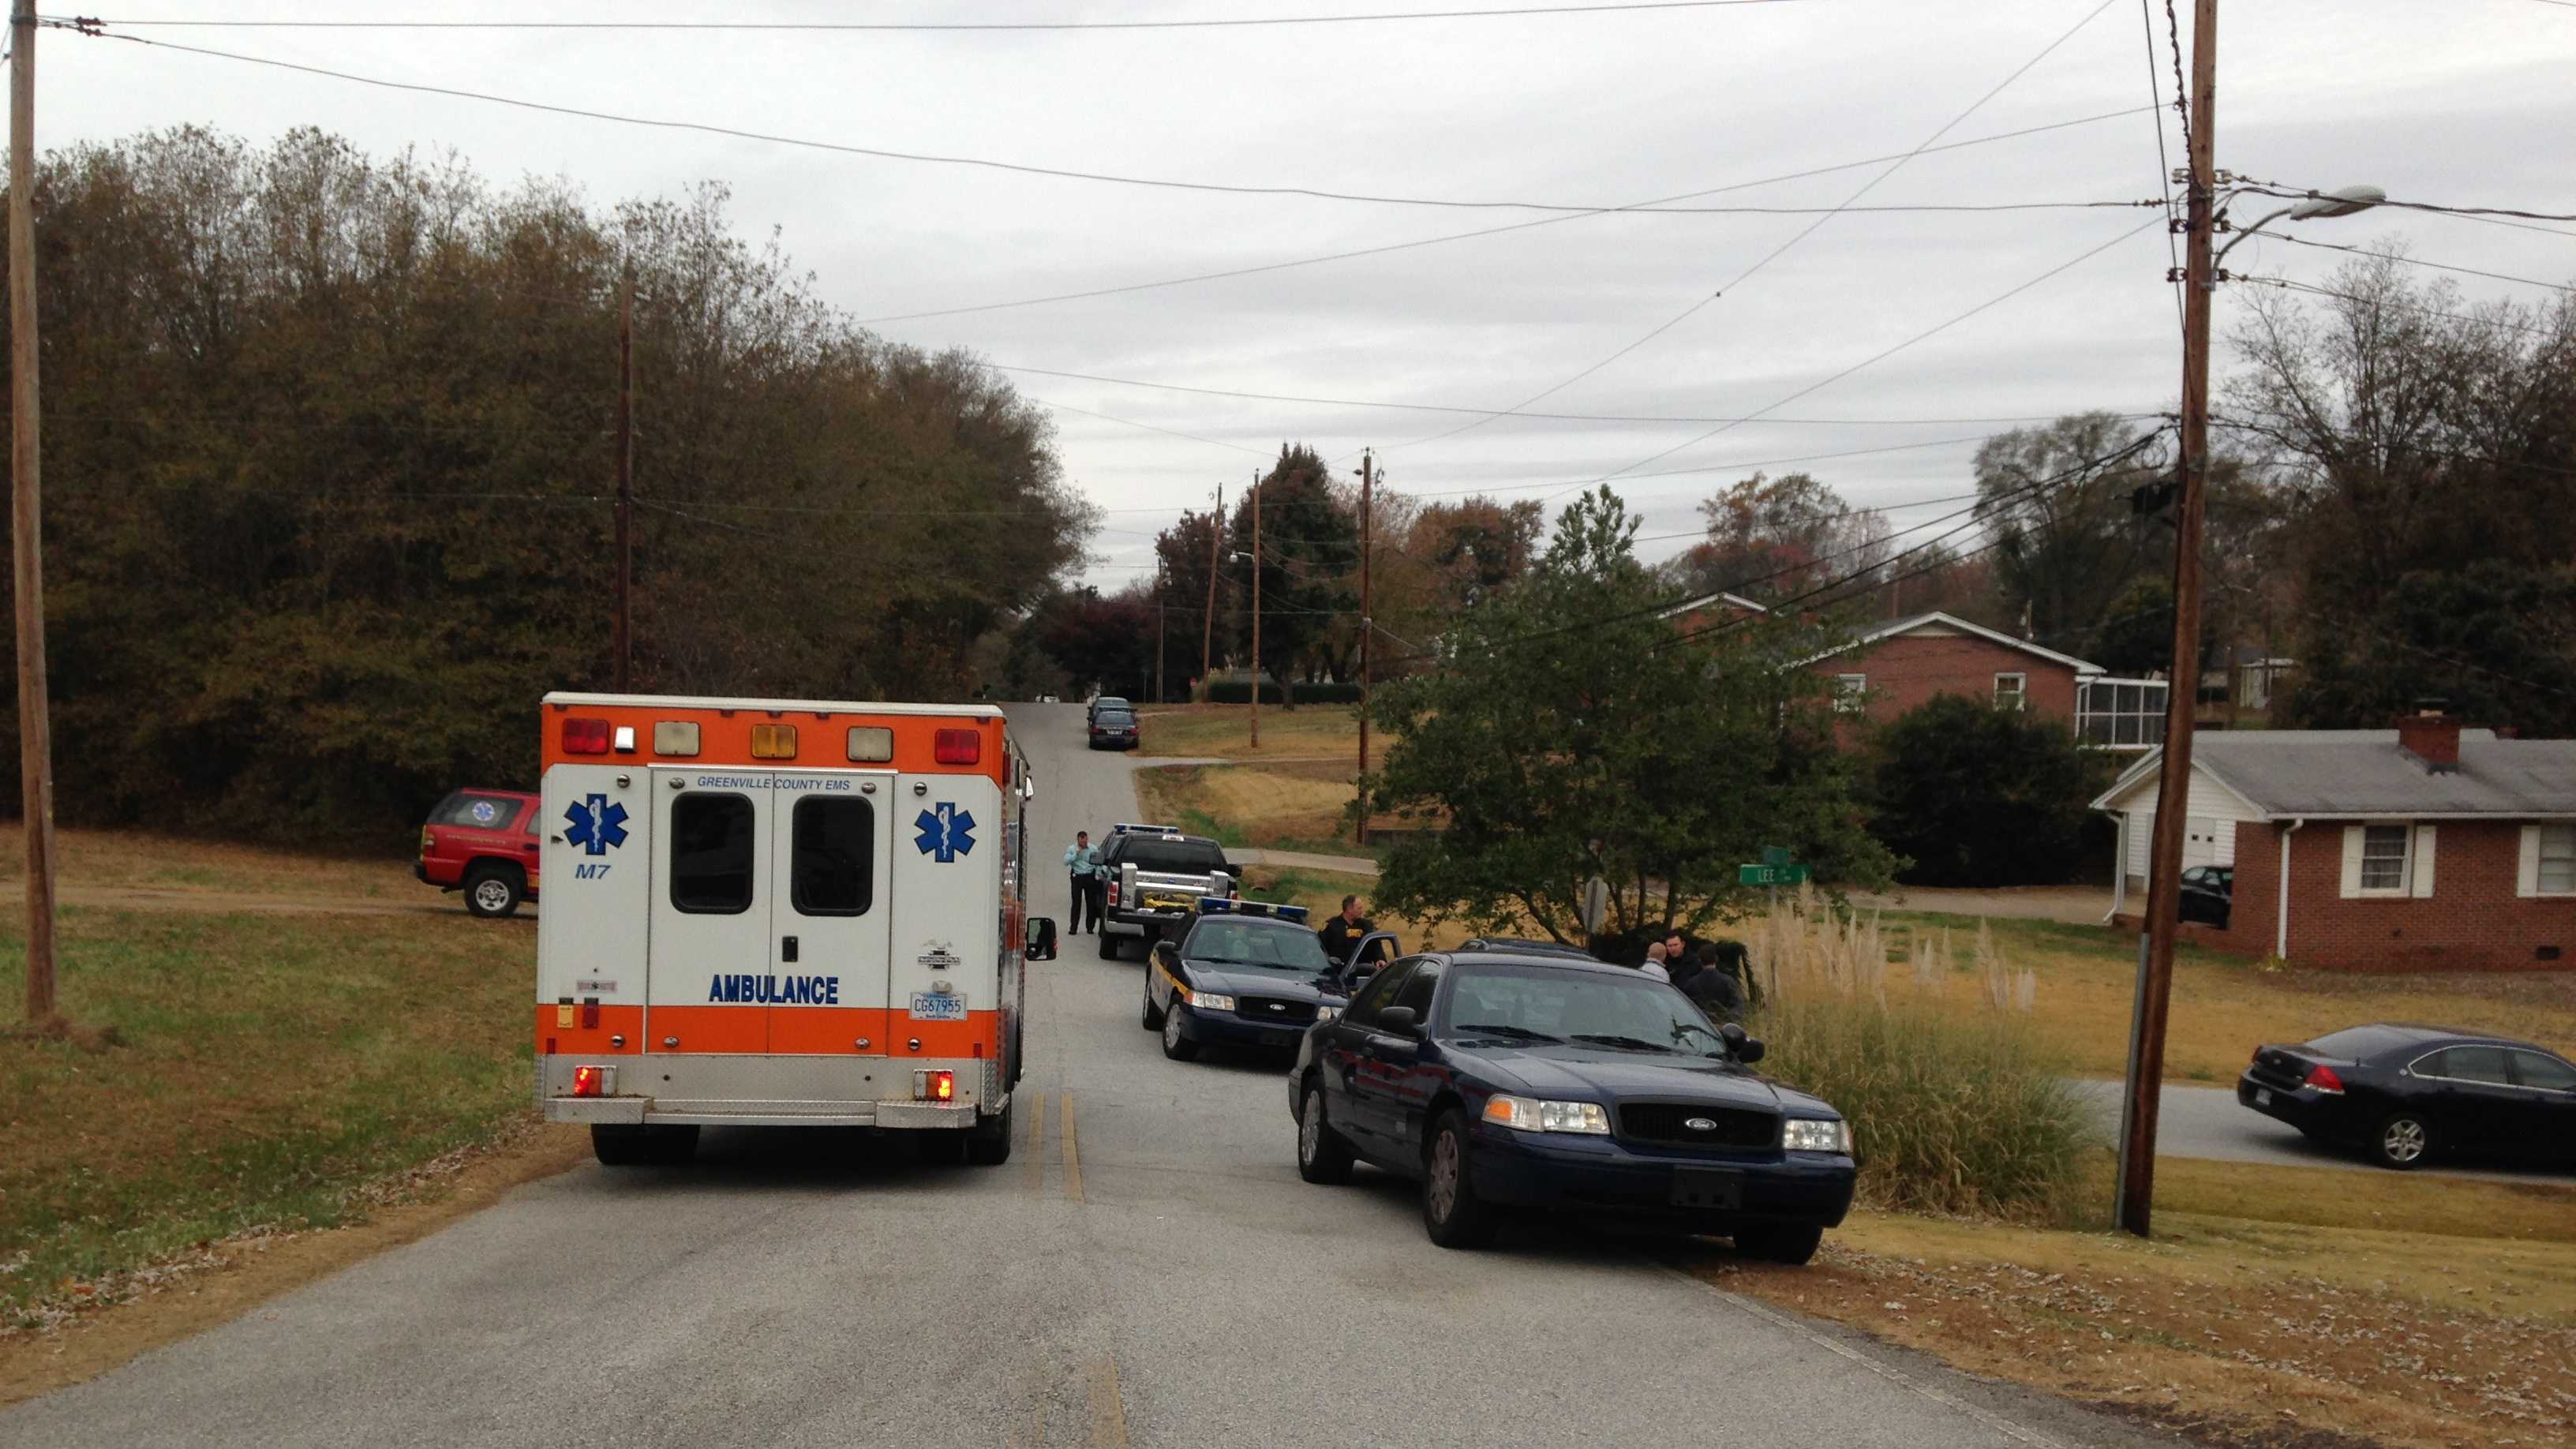 EMS and SWAT units at the scene on Crest Street in Greer.